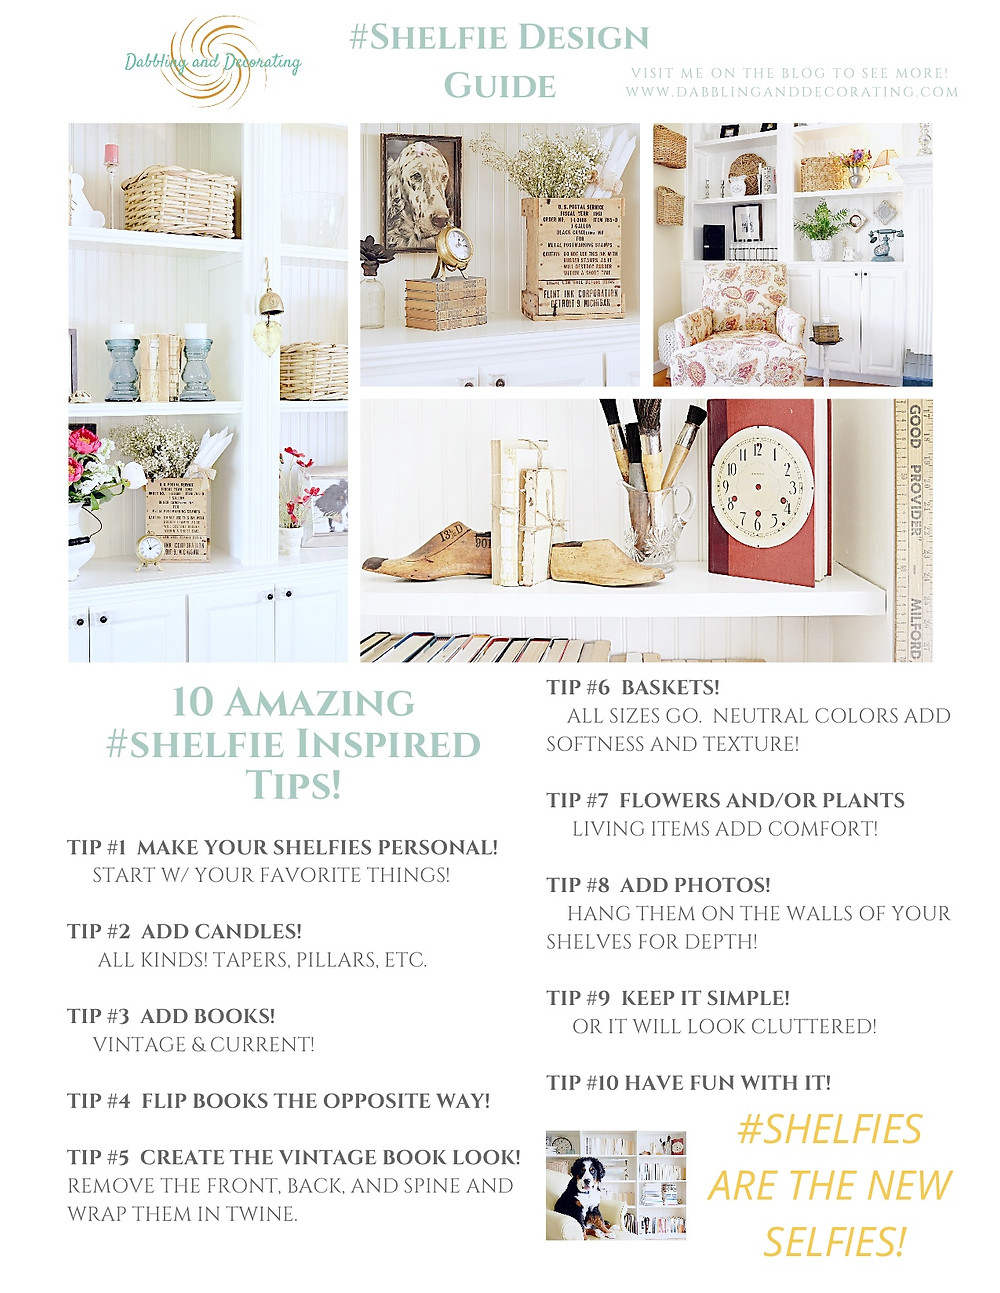 Shelfie Design Guide 10 Amazing Inspired Tips!